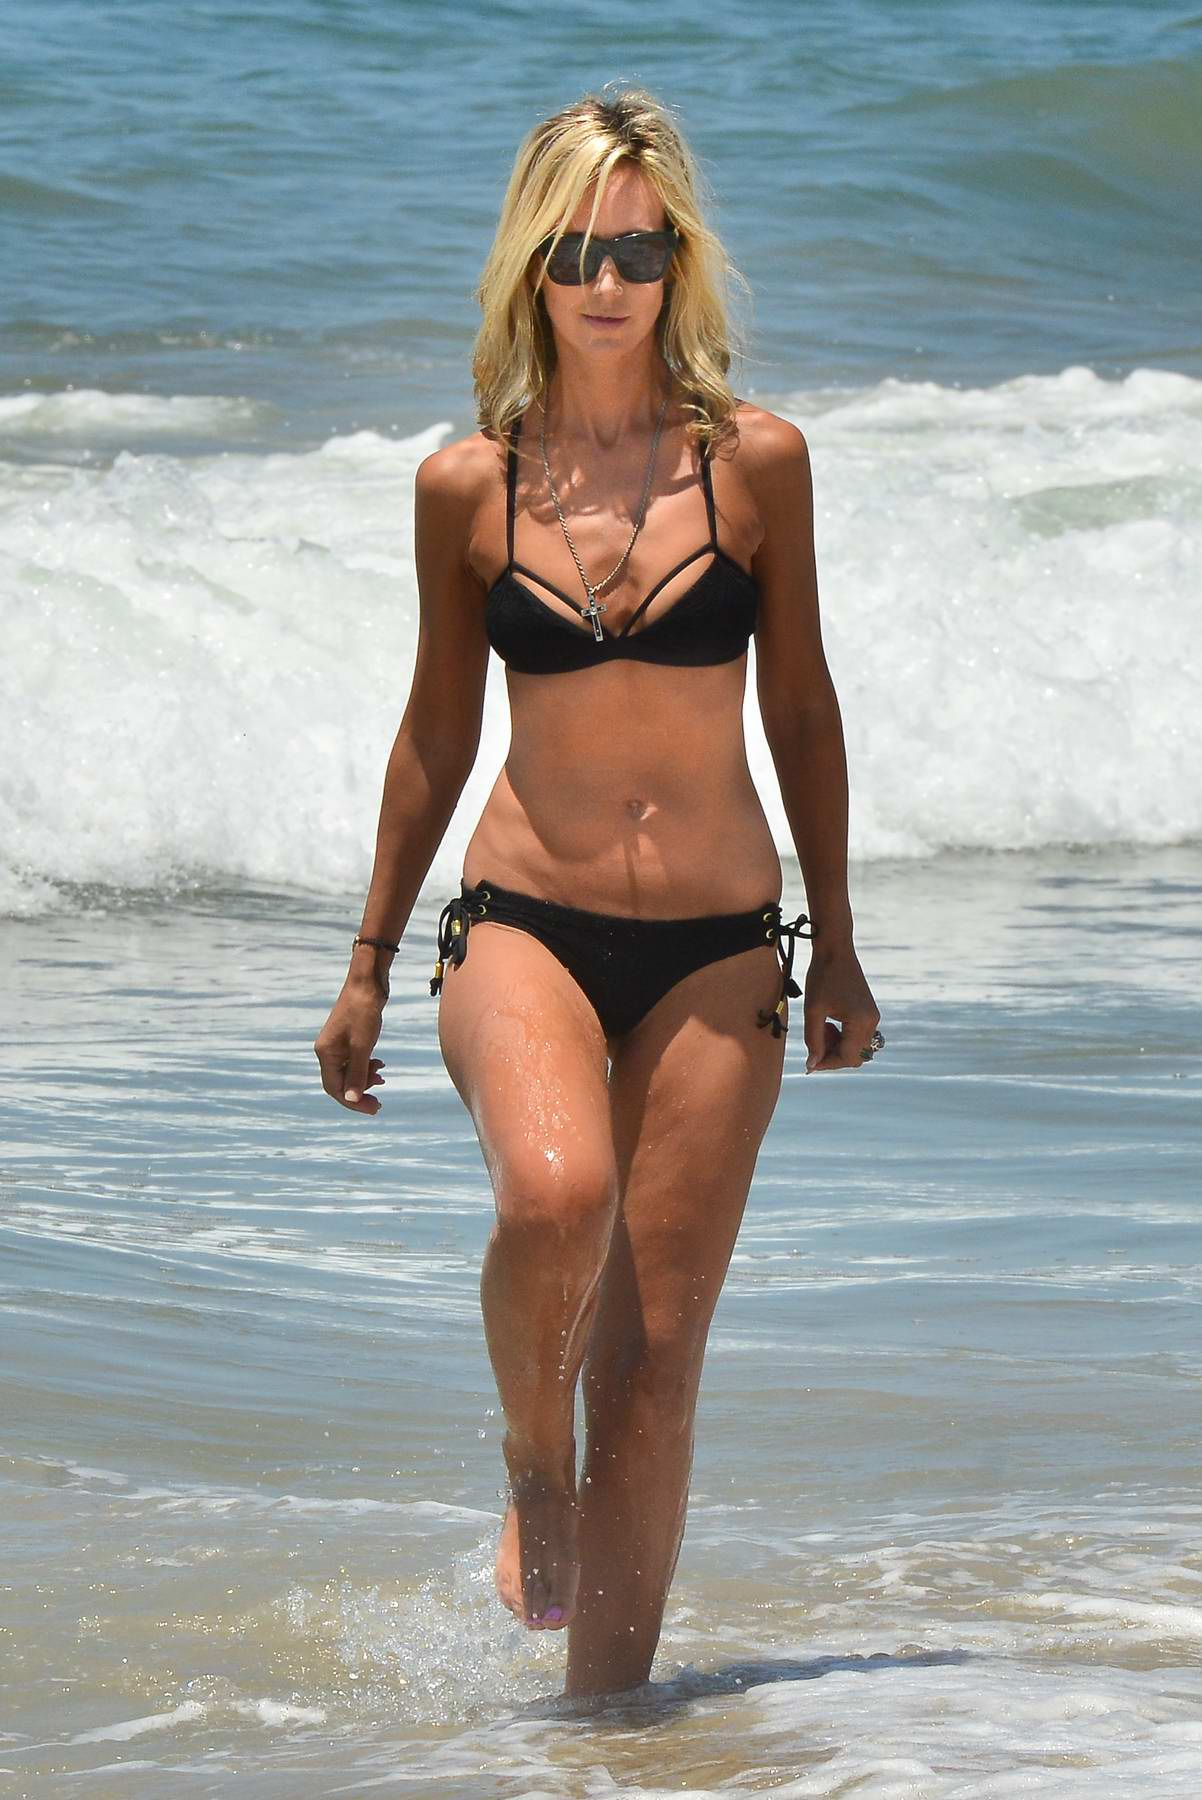 Lady Victoria Hervey in a Black Bikini spotted at the Beach in Santa Monica, CA